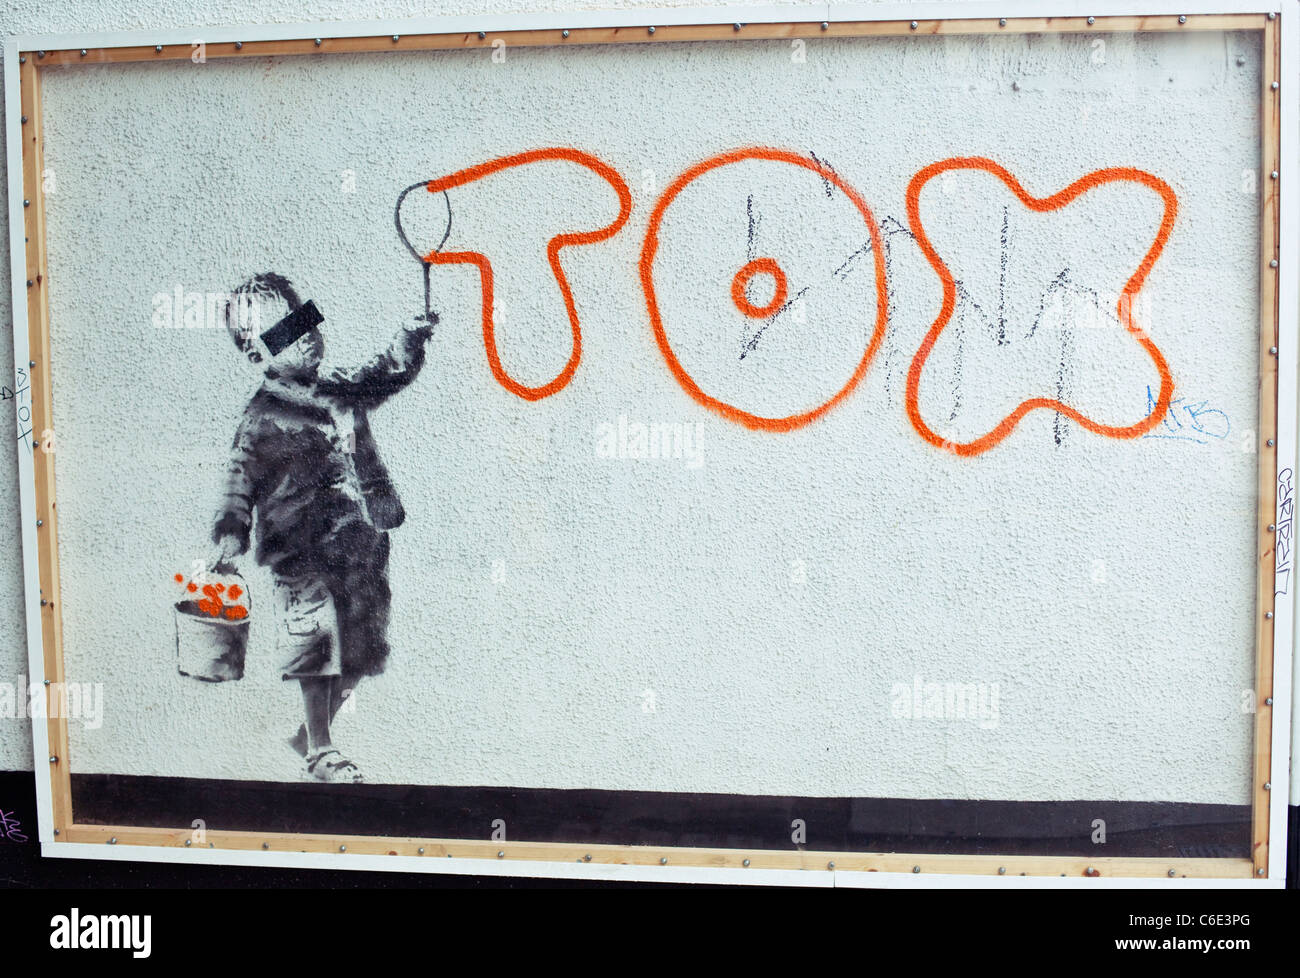 Stencil graffiti on a white wall, Camden, London, England, UK, GB - Stock Image